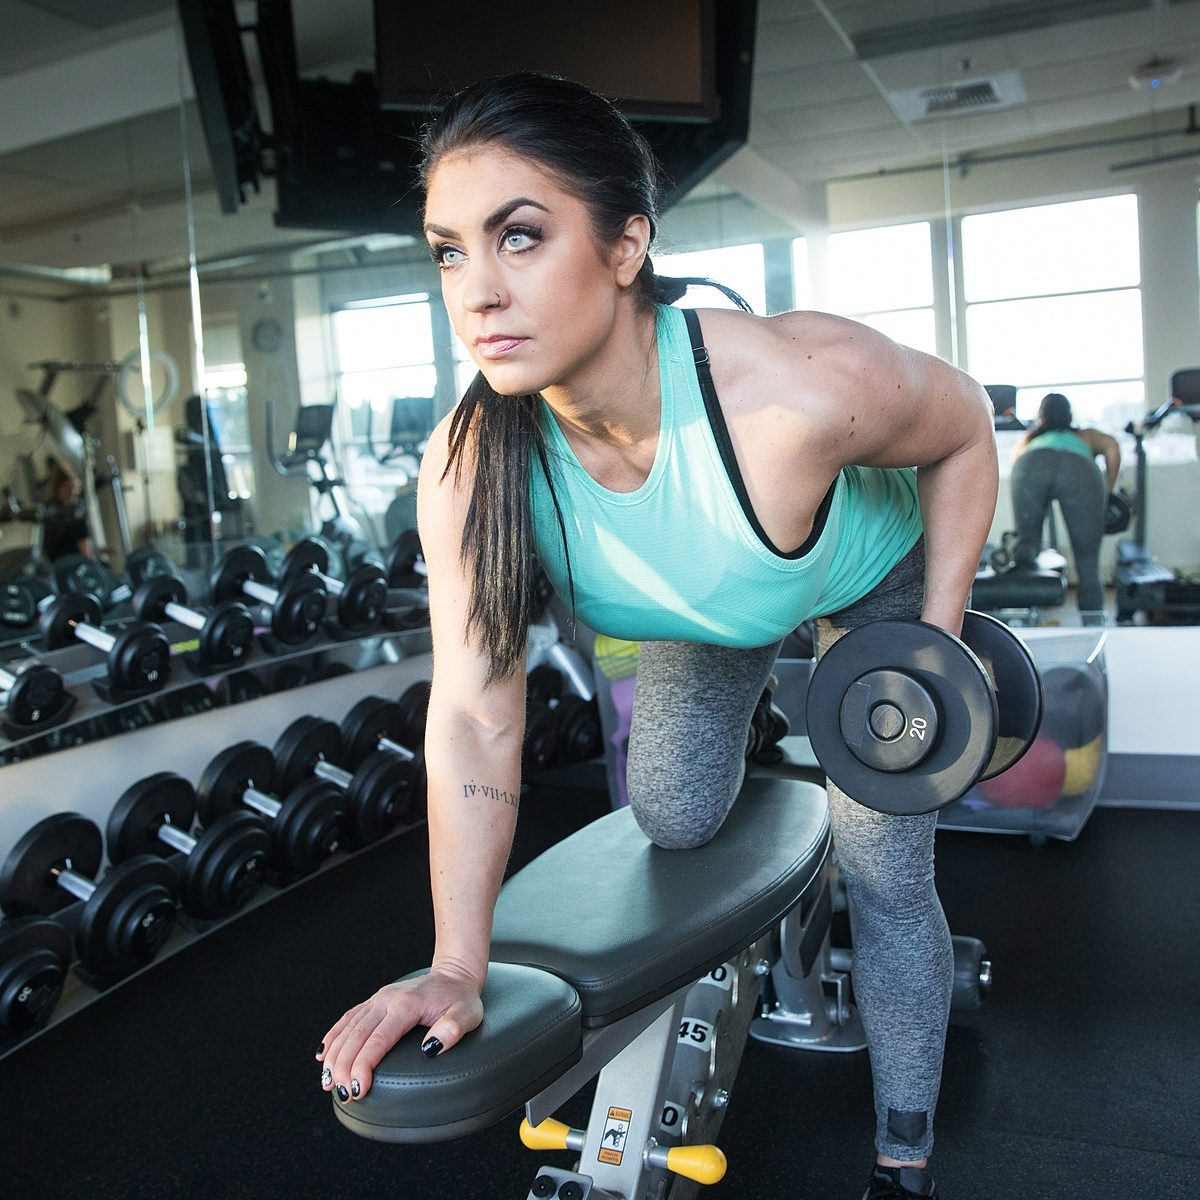 Lift like a girl: myths of weight lifting